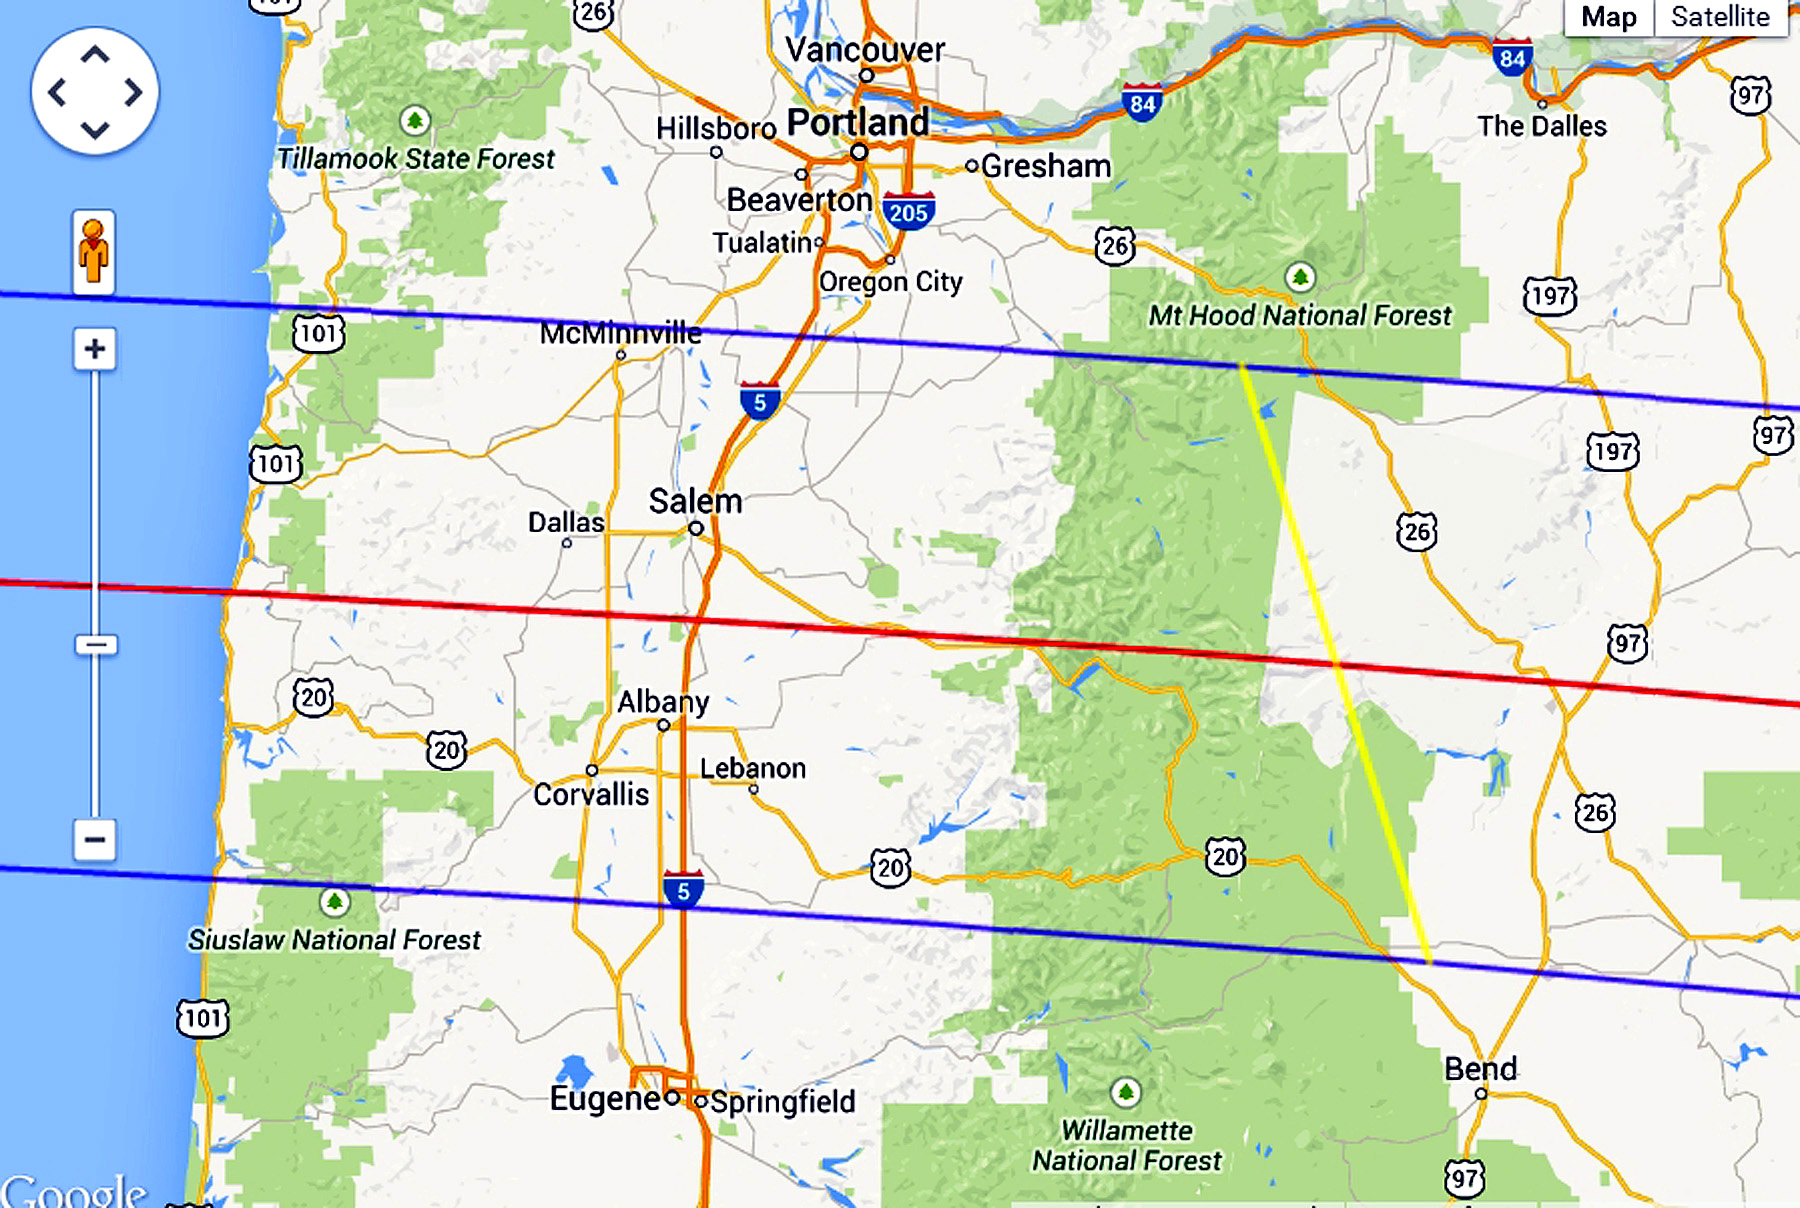 22 Model Map Oregon Eclipse afputracom